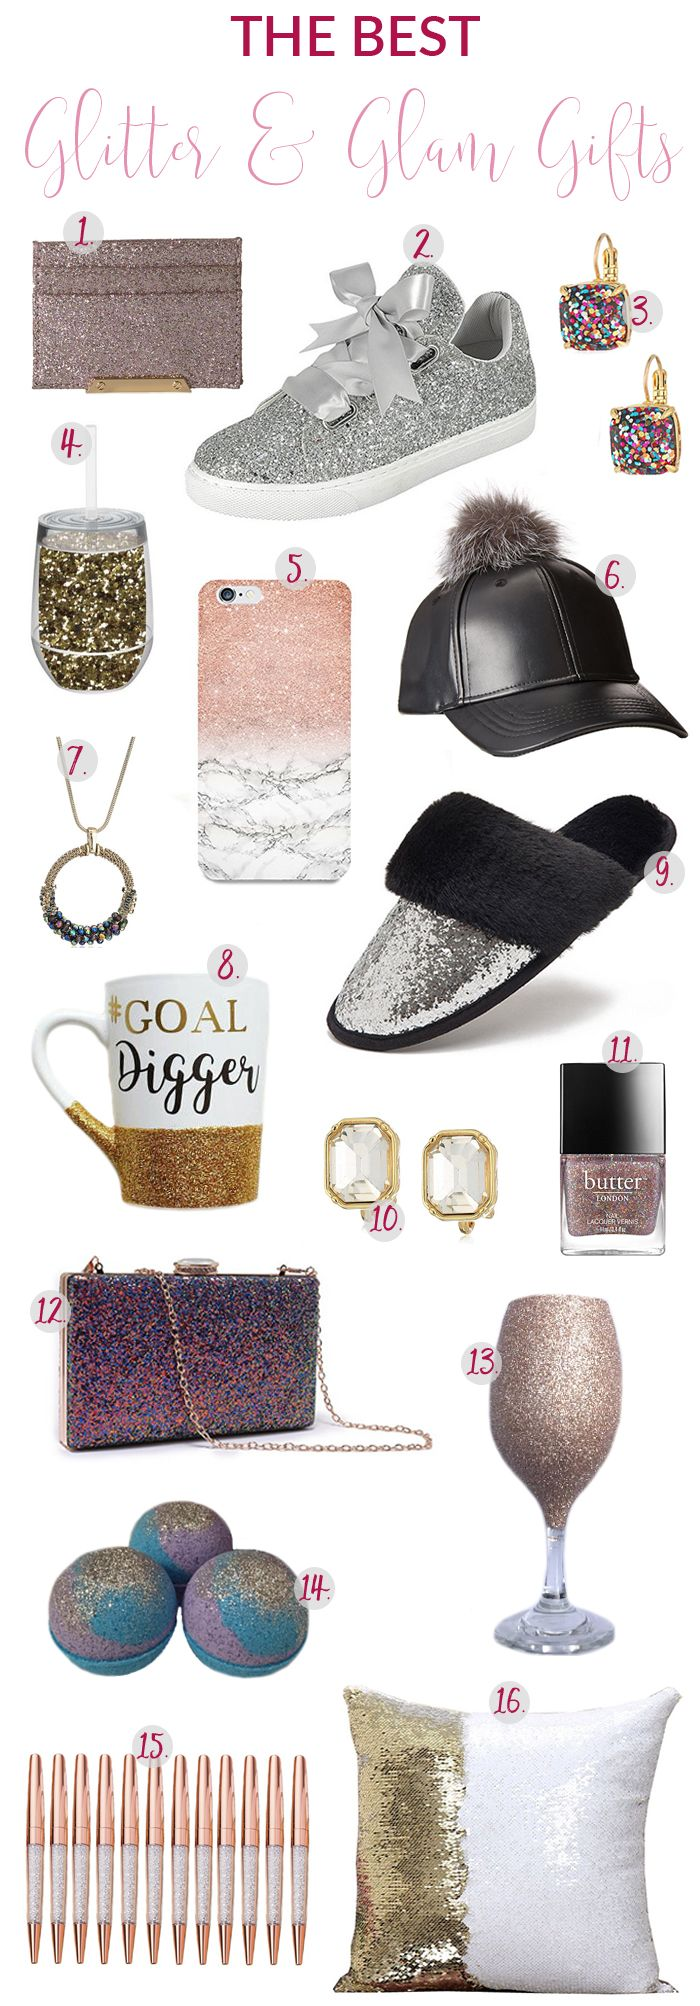 If its metallic, glittery or glam, I'm ALL OVER IT! These glitter and glam gift ideas are perfect for the girl that loves all things sparkly and shiny!  #giftguide #giftguide2017 #glitterandglam #giftsforher